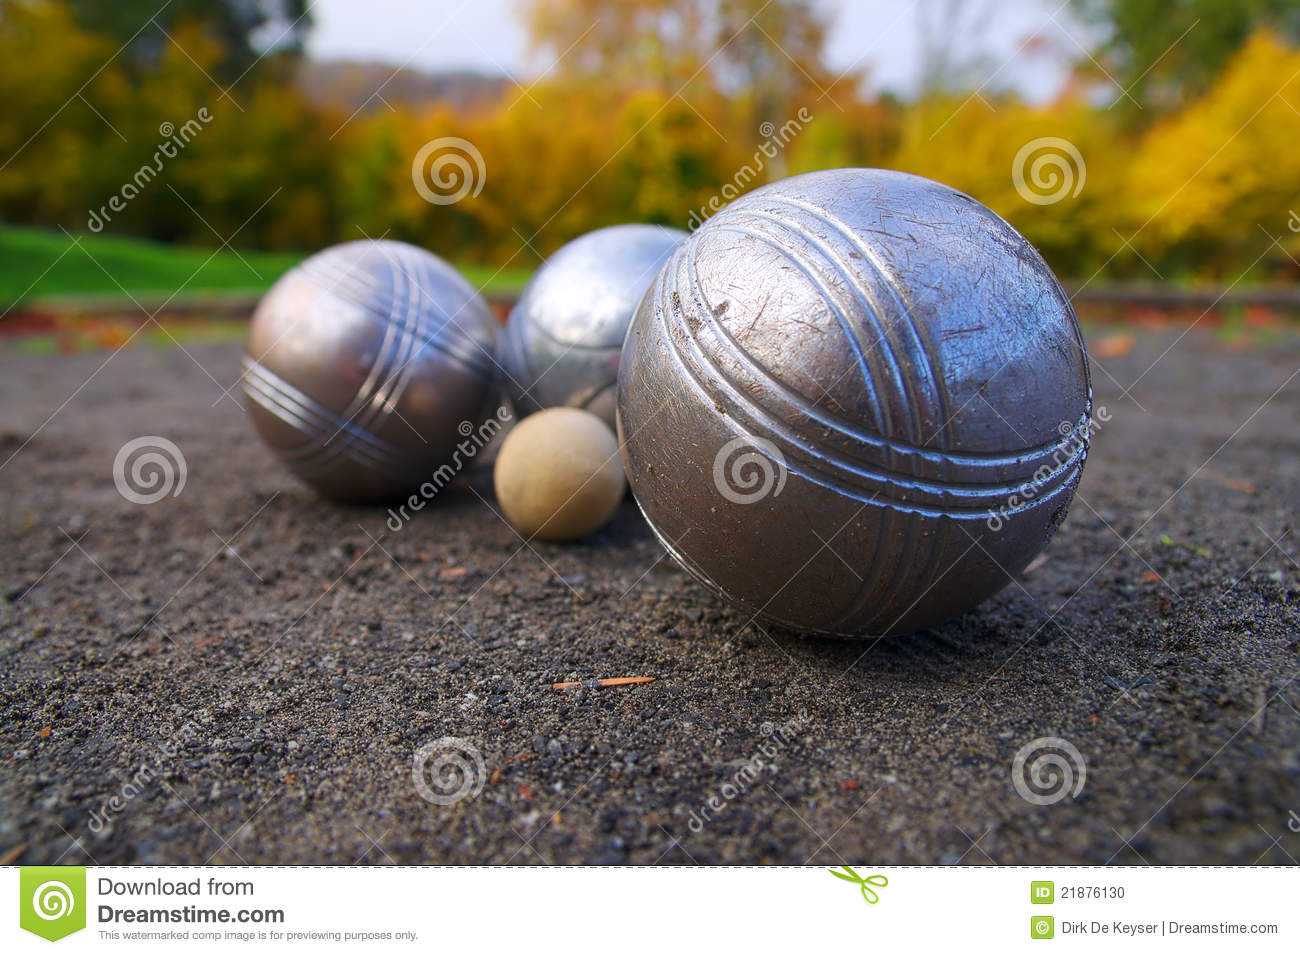 petanque jeu de boules france sports game stock photo image 21876130. Black Bedroom Furniture Sets. Home Design Ideas